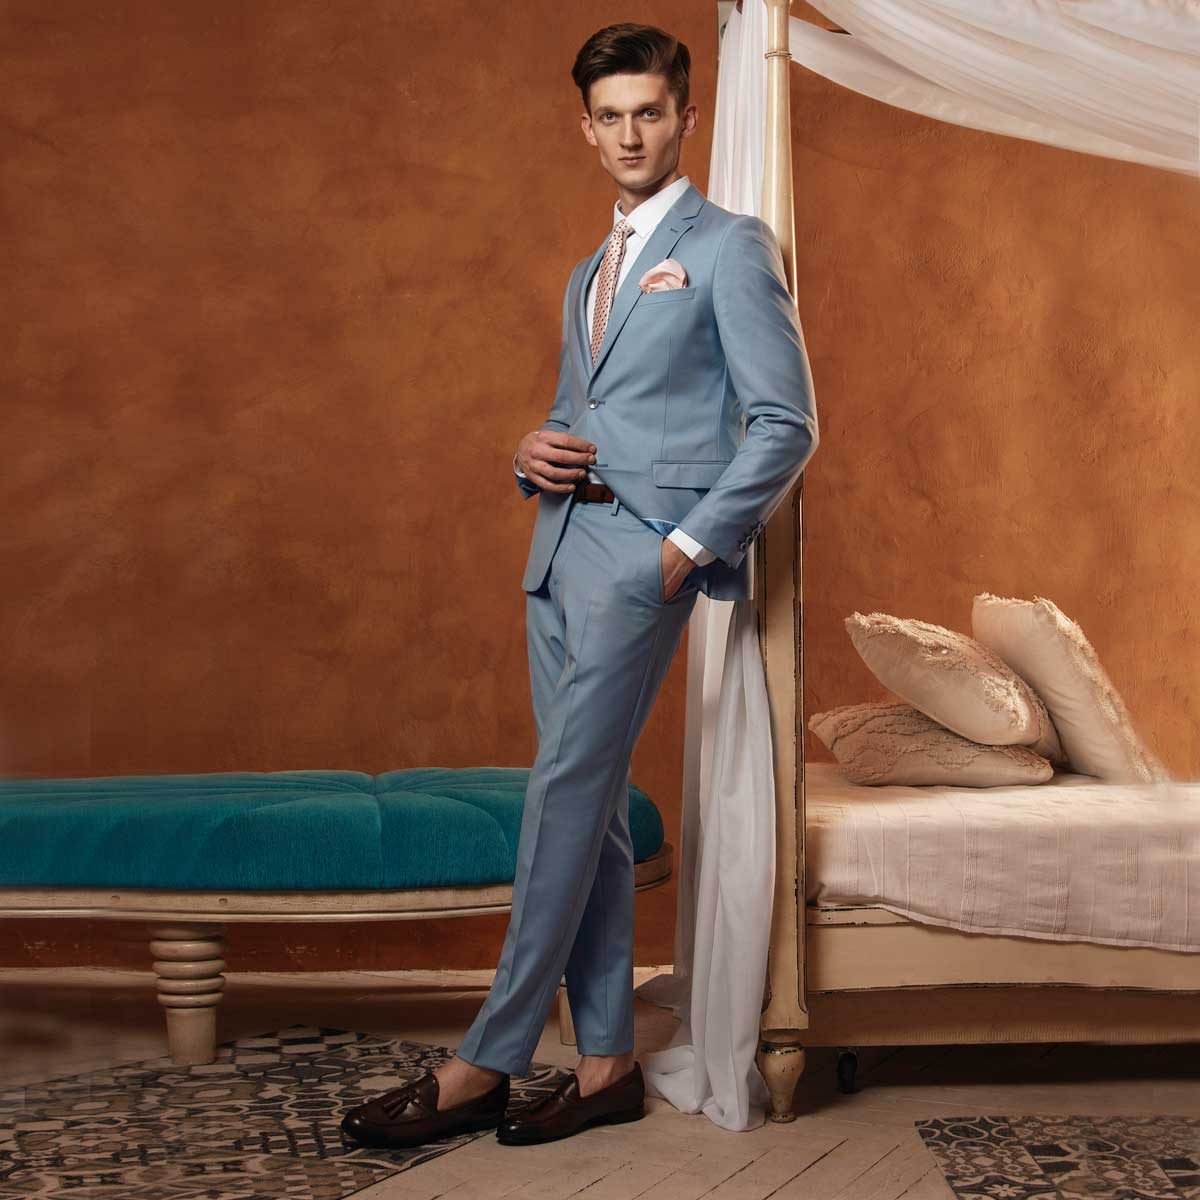 Men's blue suit